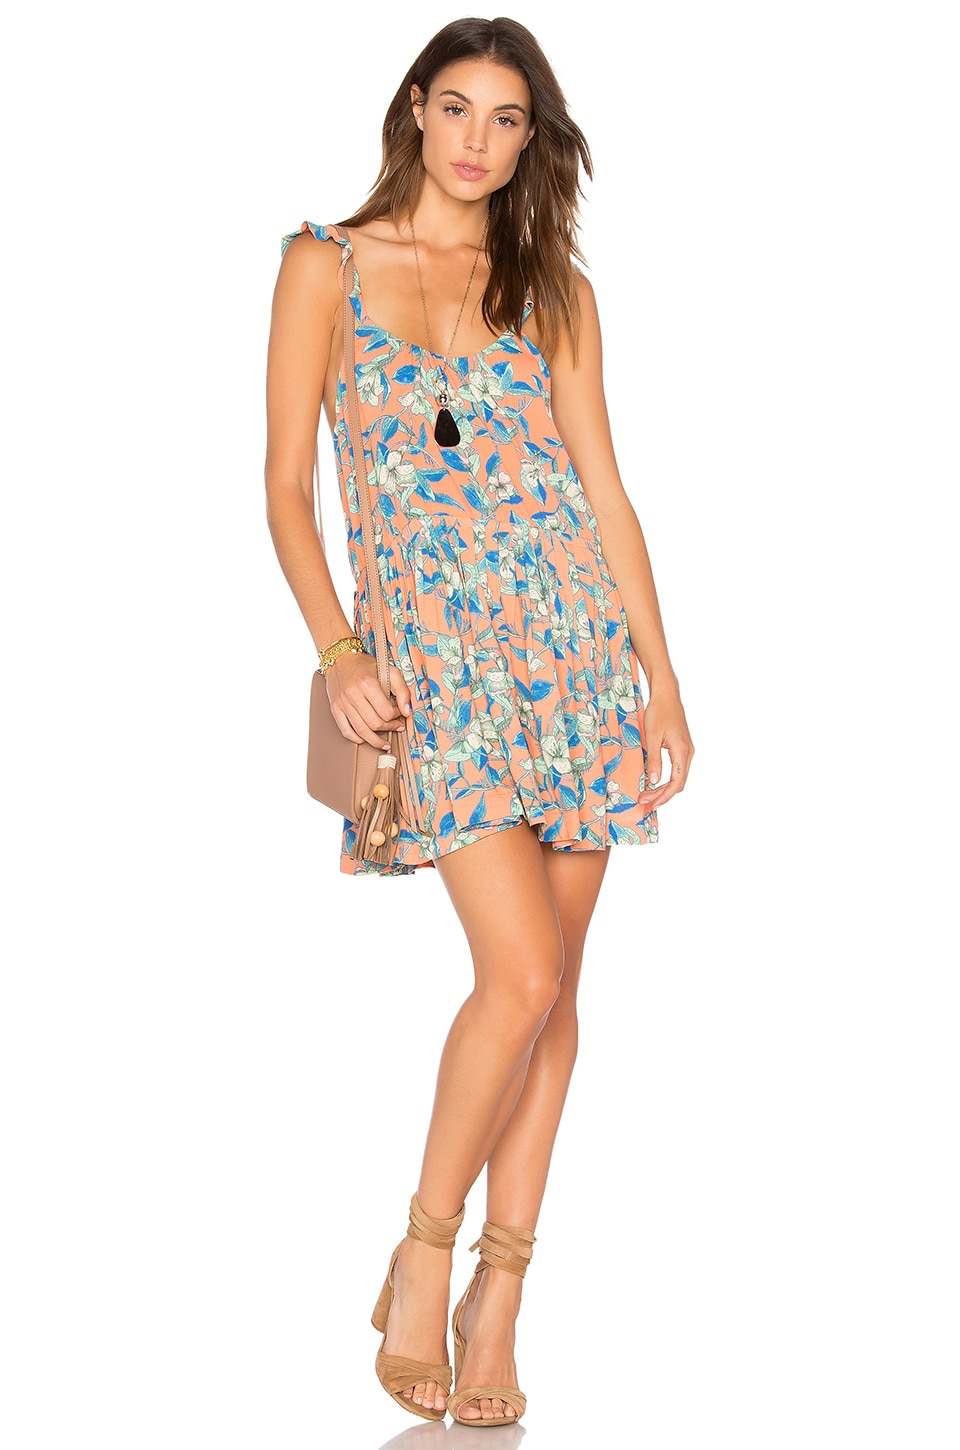 Dear You Mini Dress by Free People